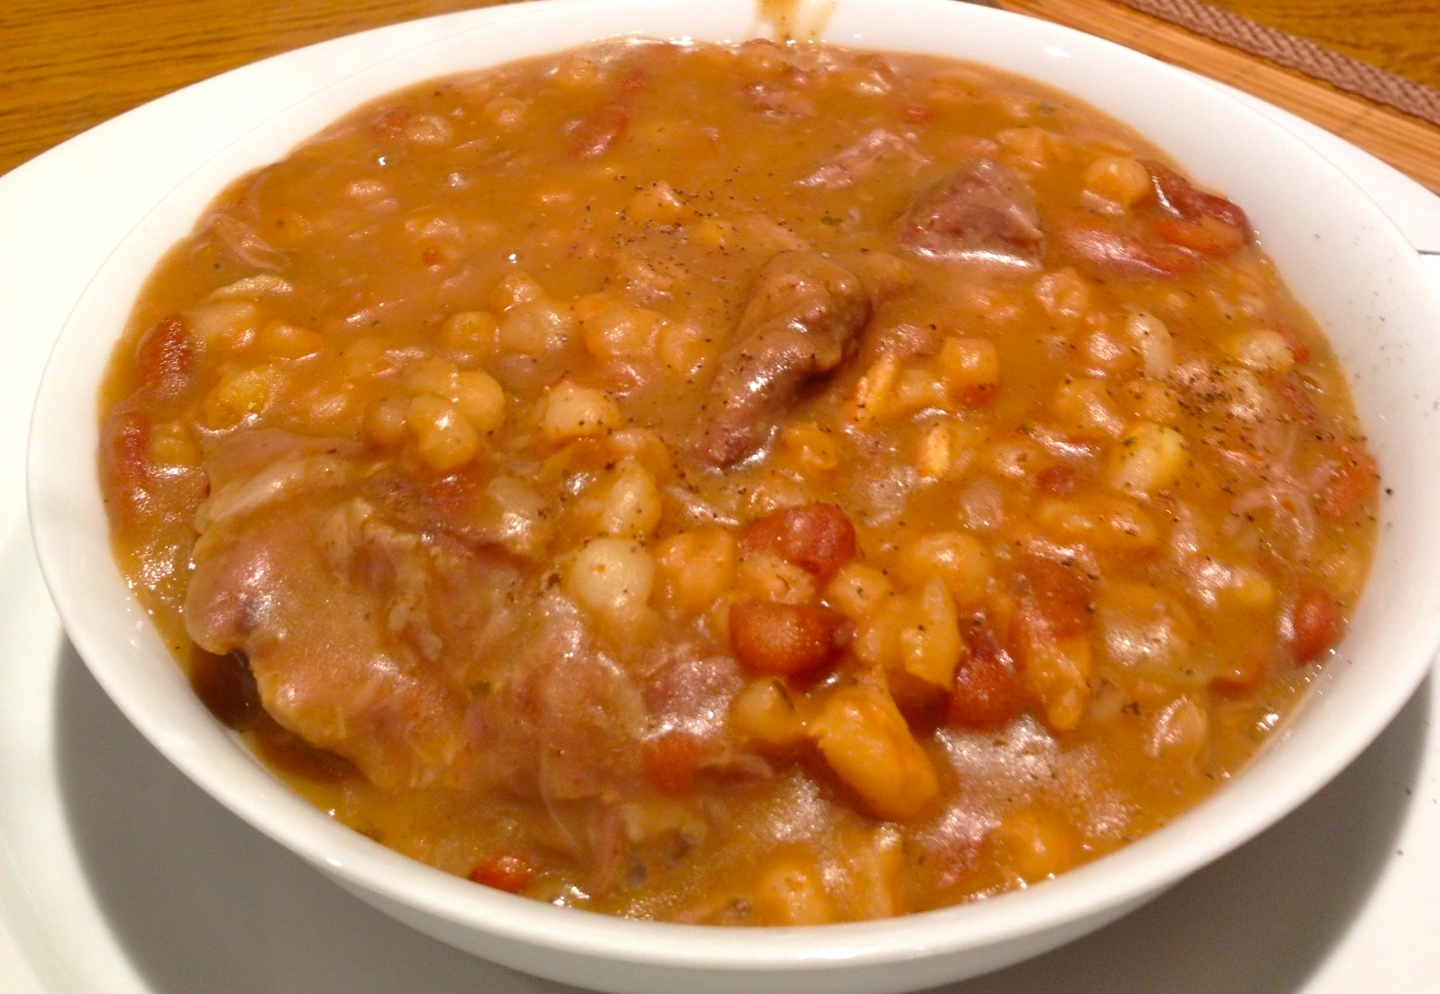 Baked Bean Recipes - Allrecipes.com